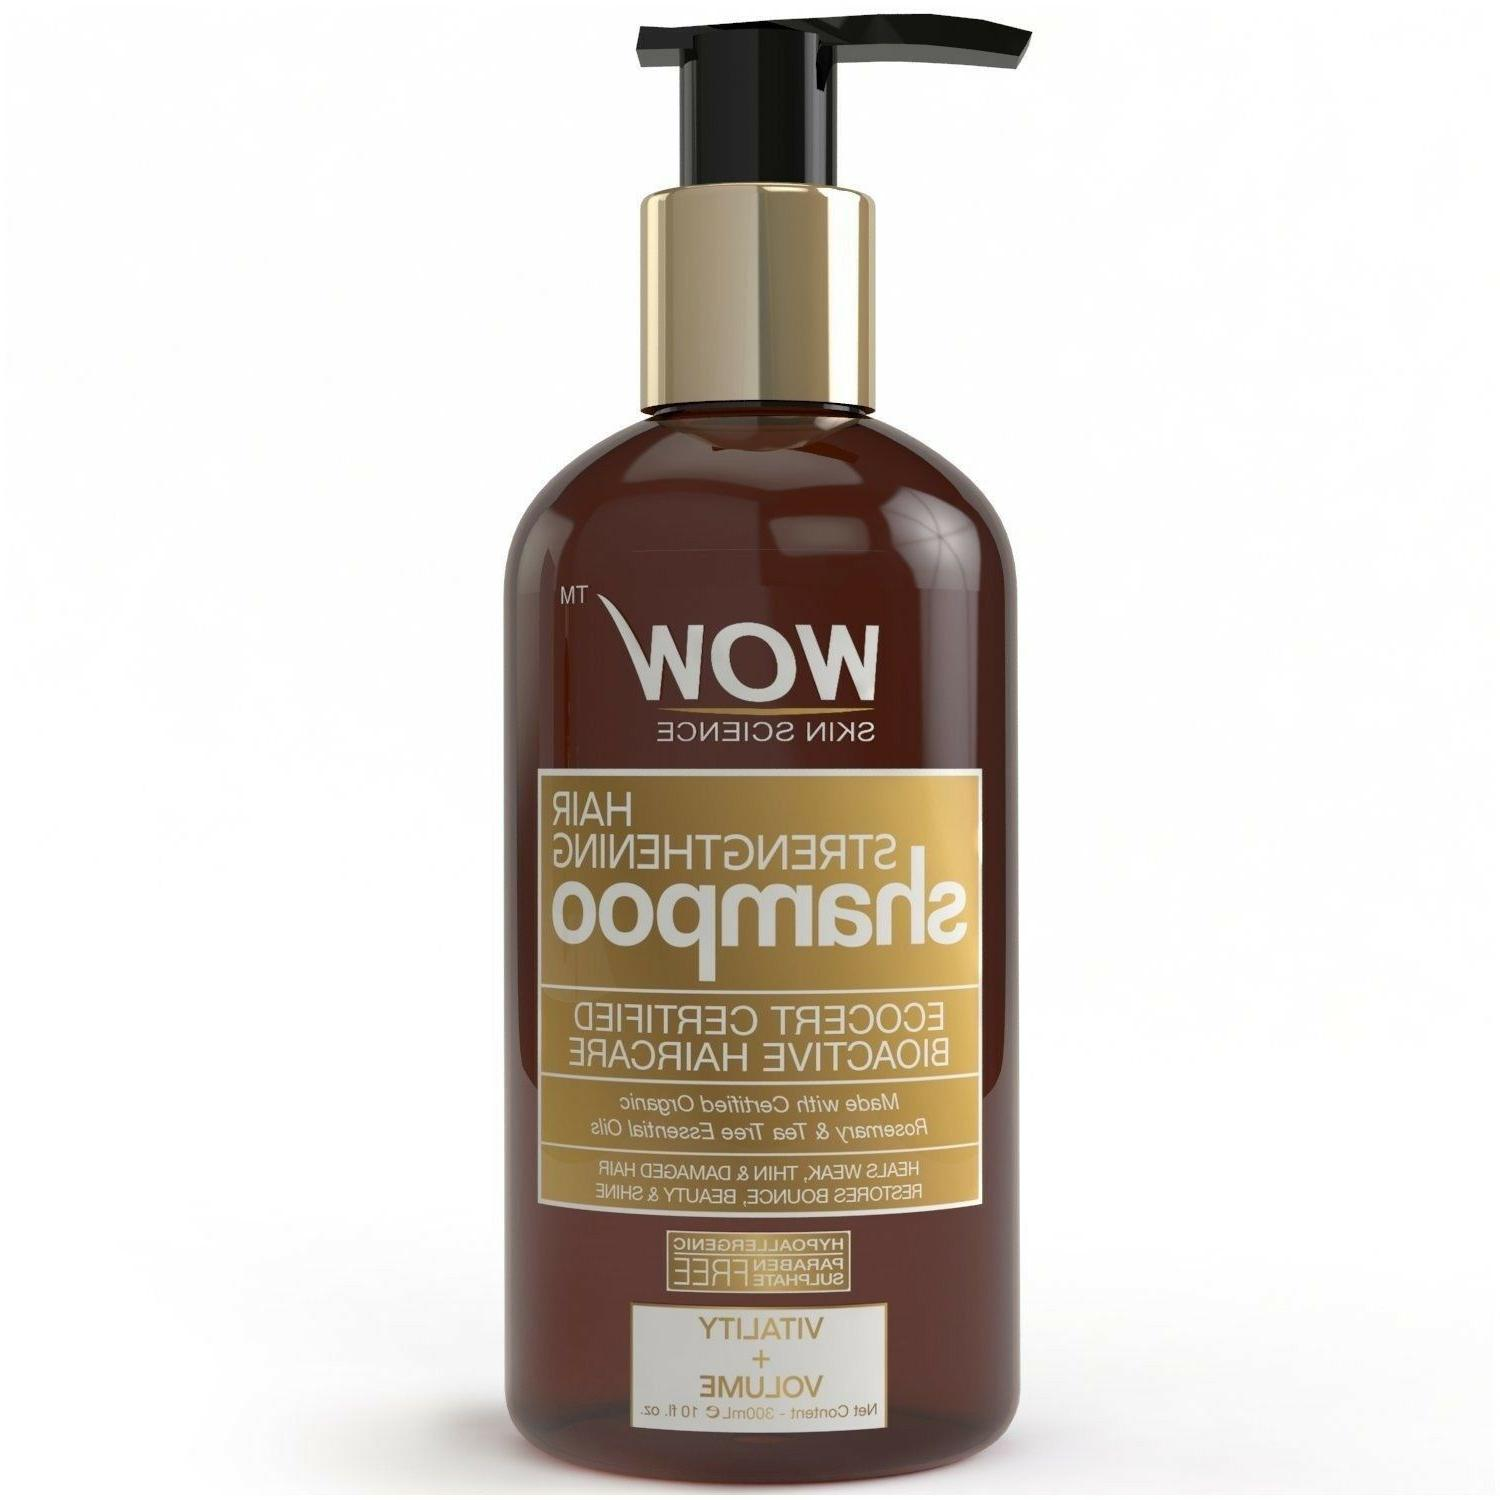 WOW Hair Strengthening Shampoo for Hair Growth and Hair Repa